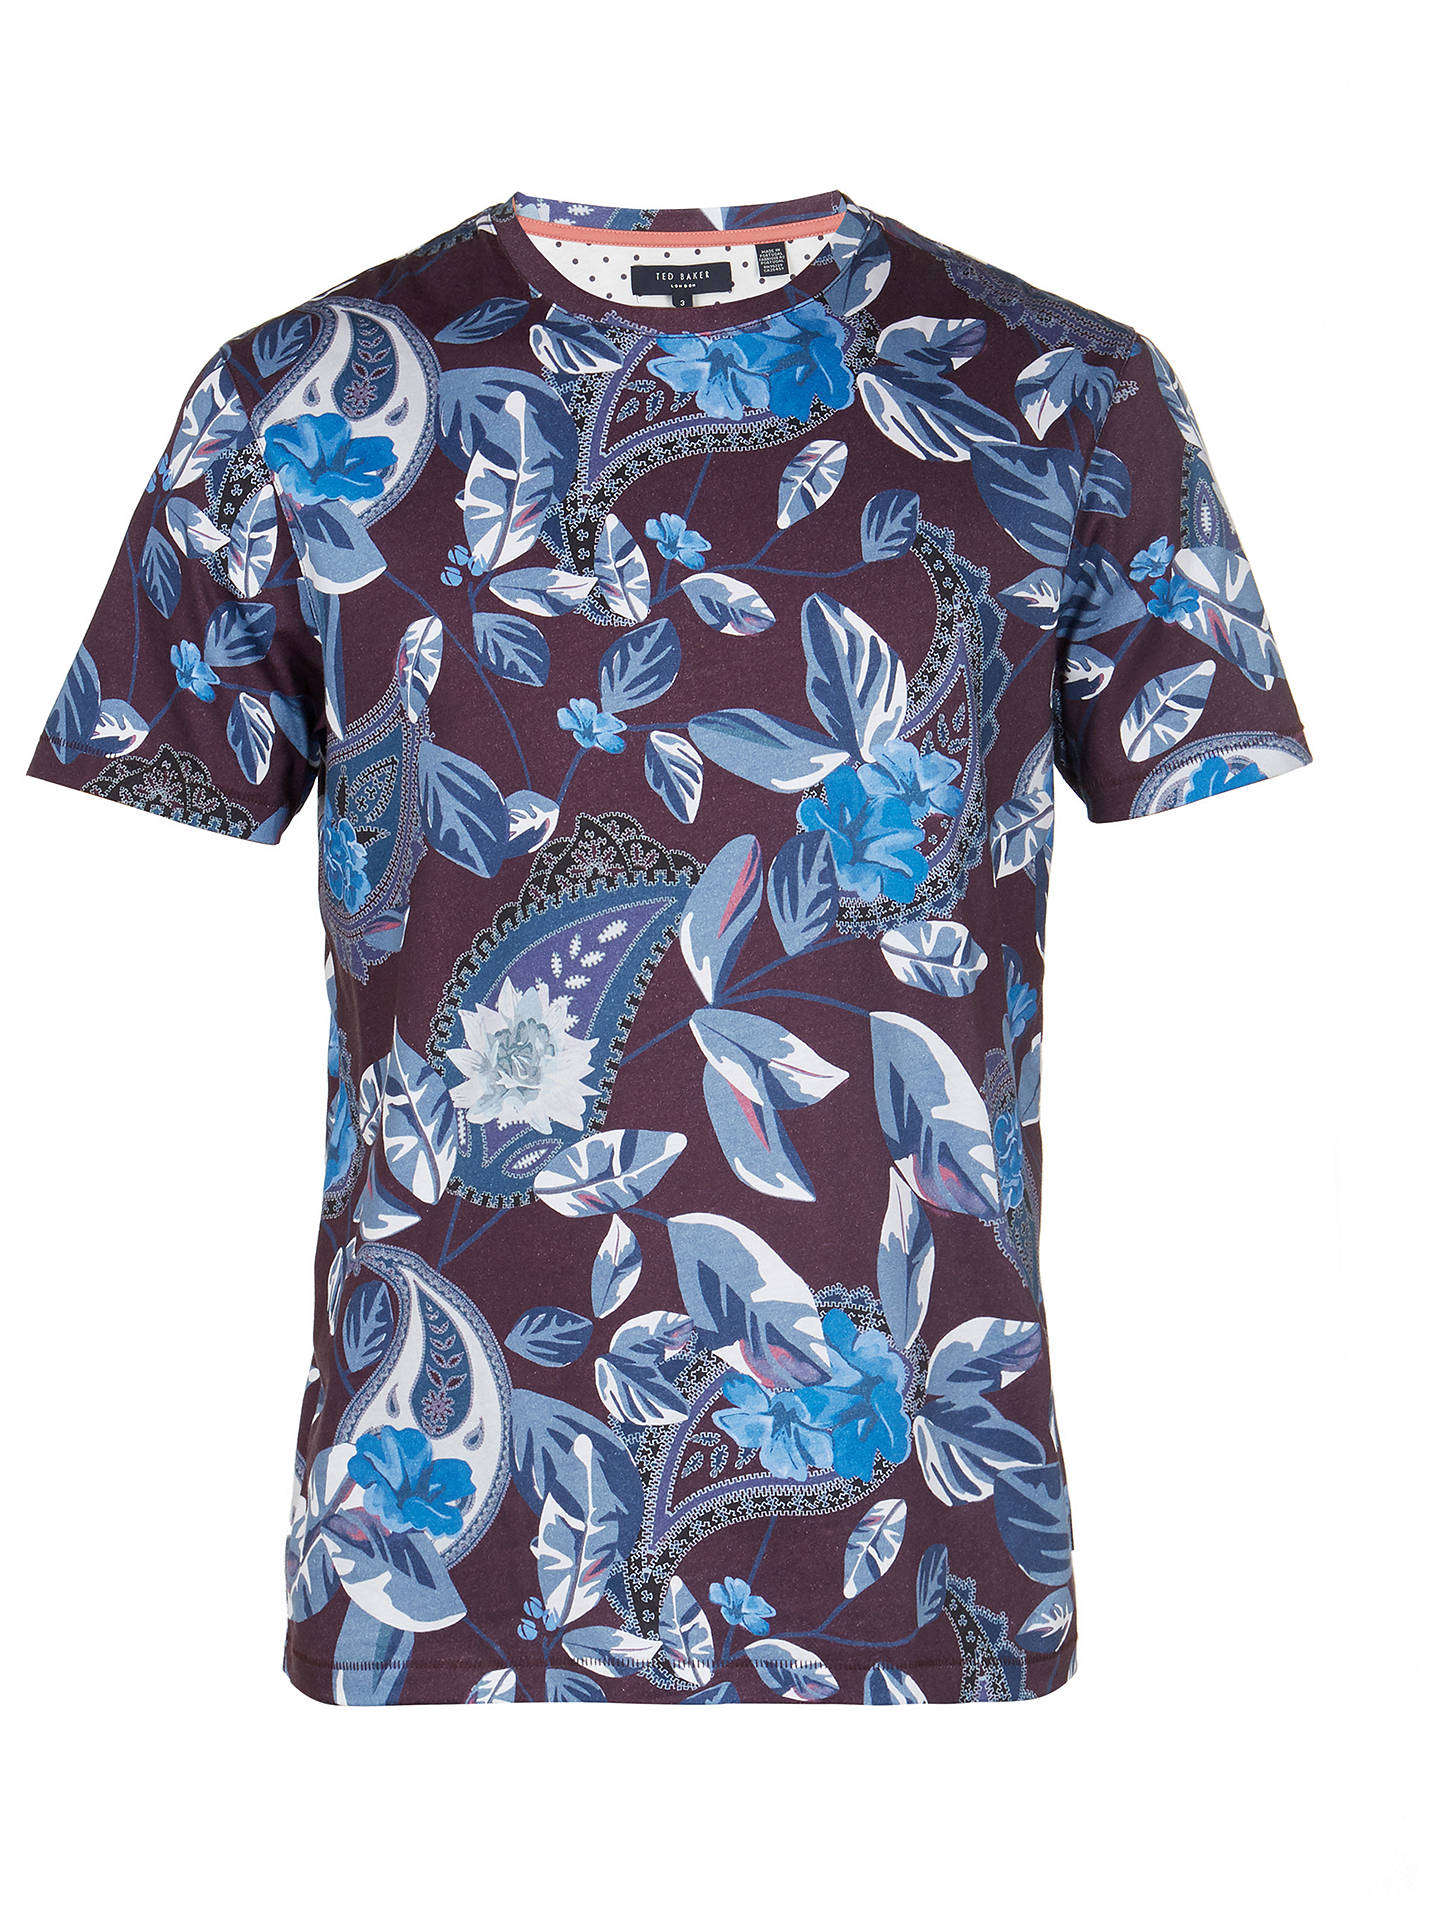 BuyTed Baker Lewii All Over Printed T-Shirt, Purple, 2 Online at johnlewis.com